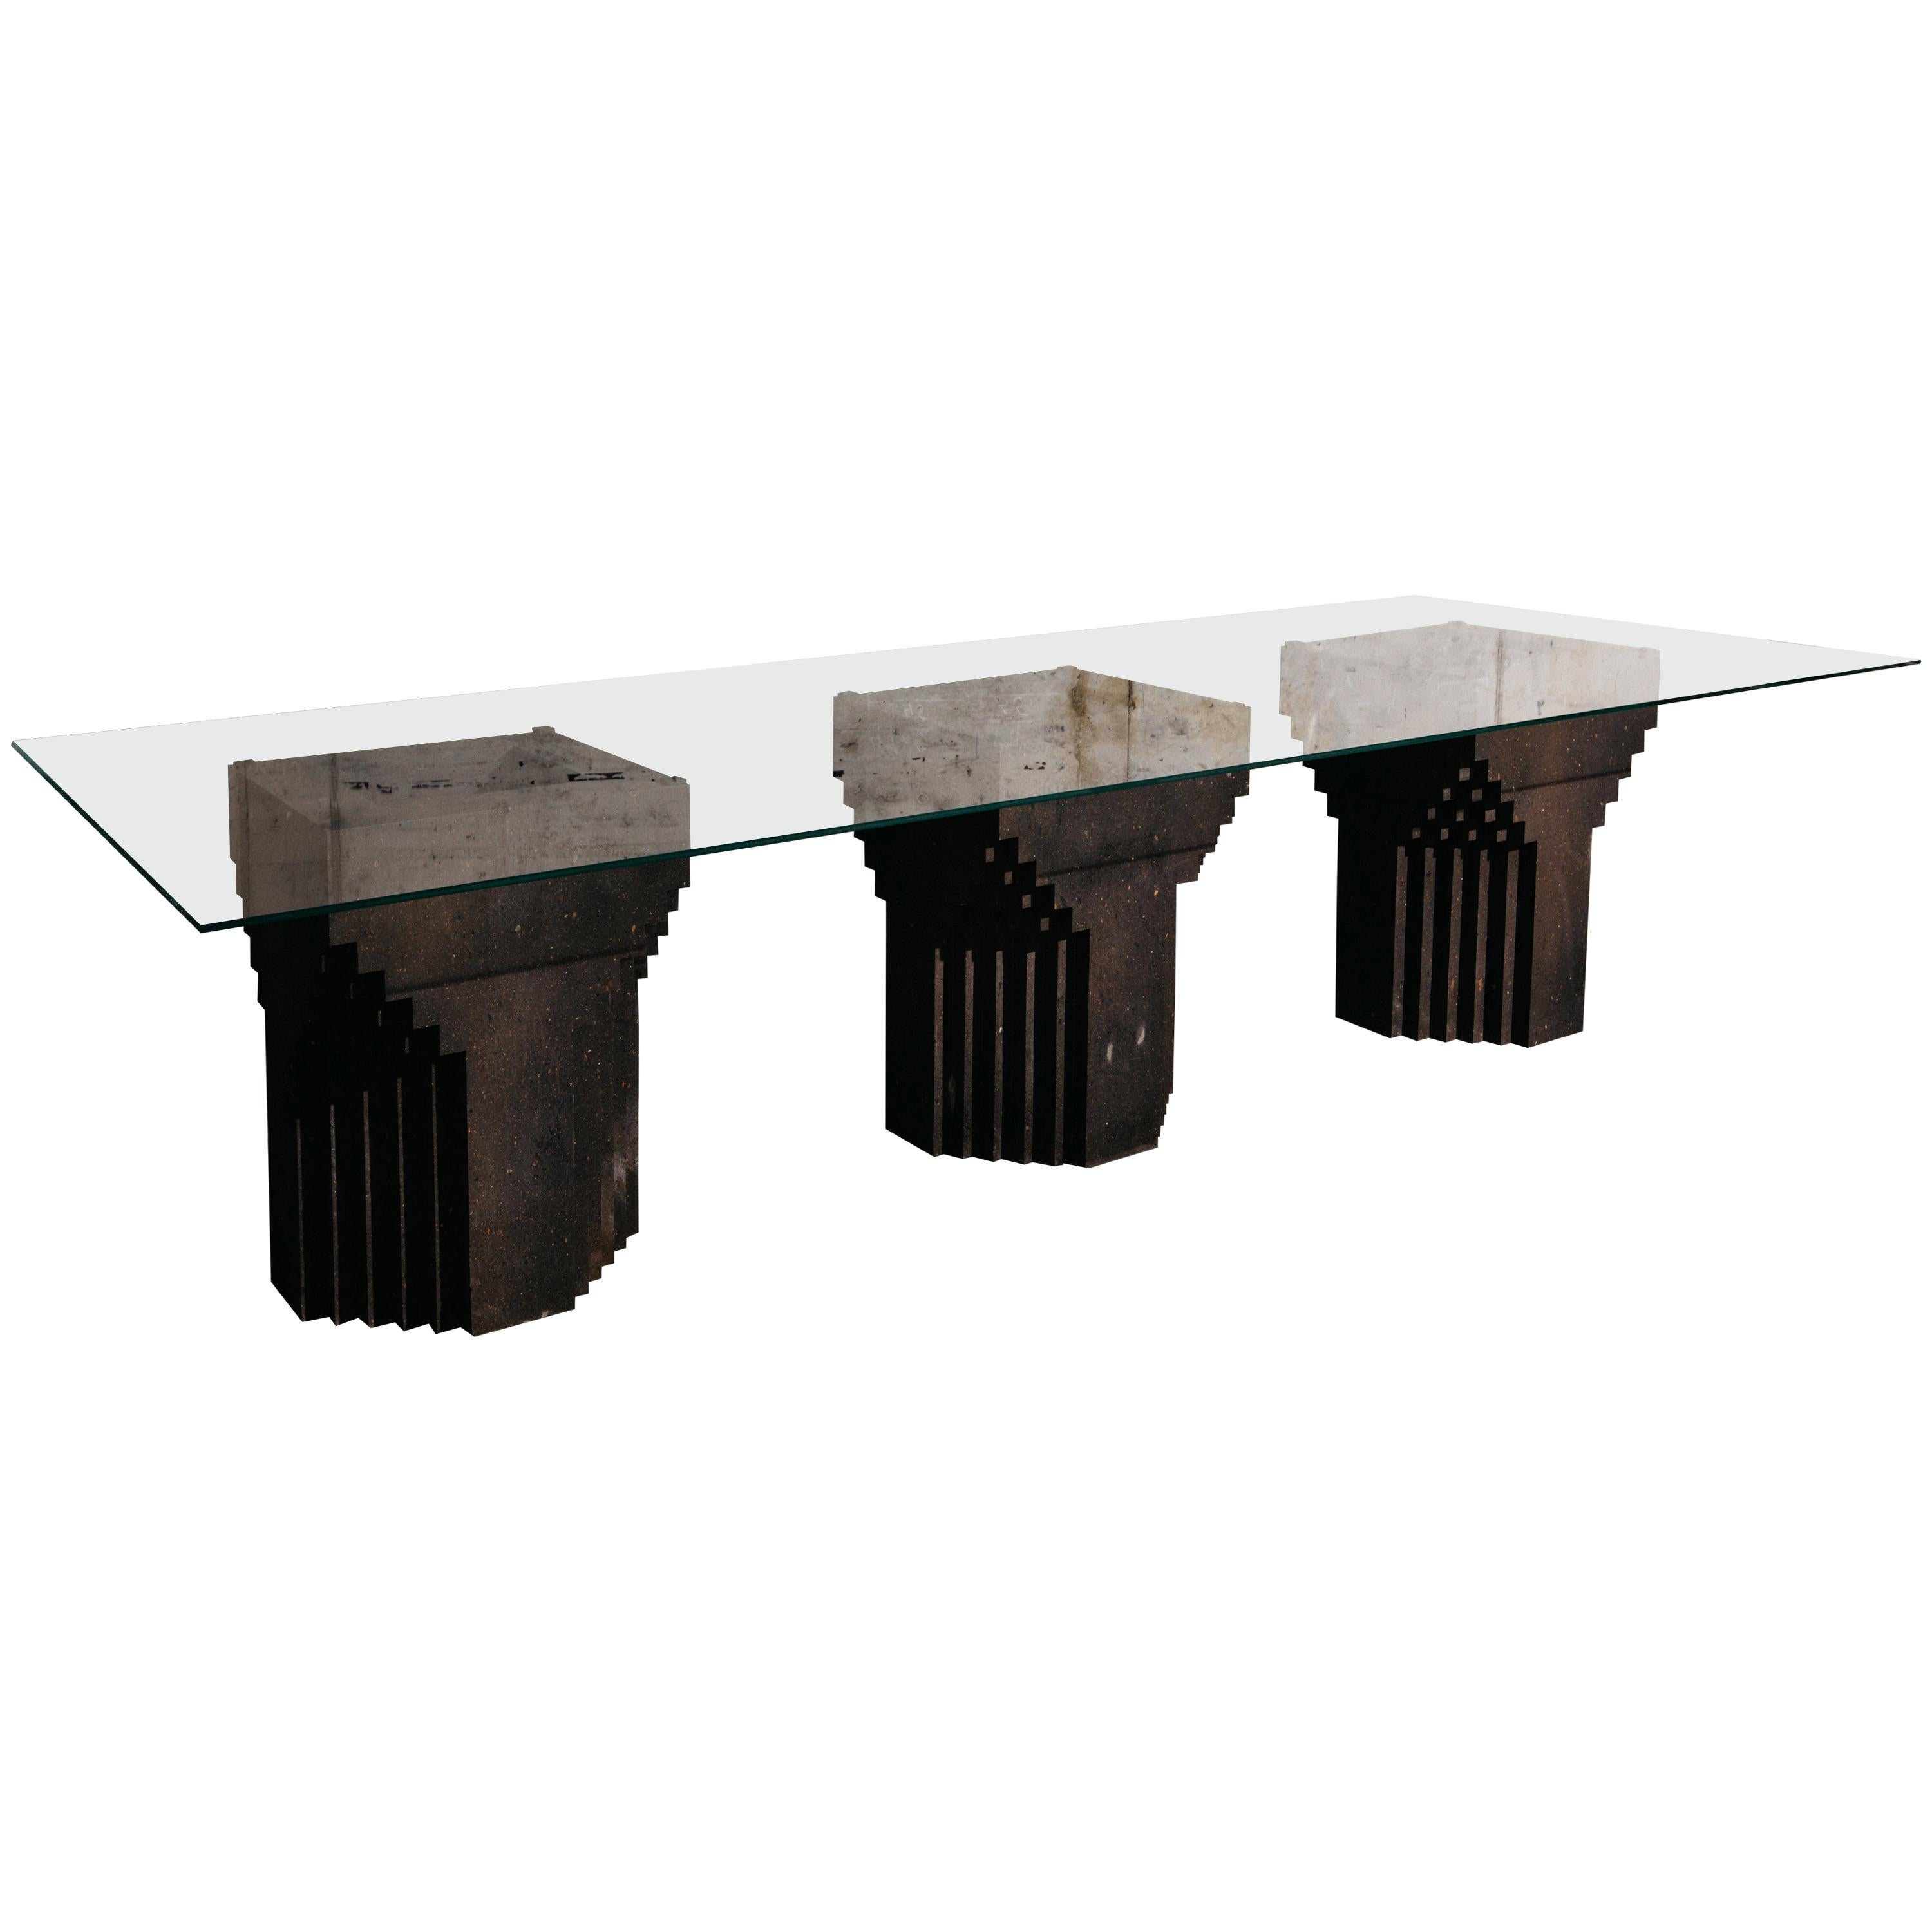 Source Dining Table No.1 in Black Tuff and Clear Glass